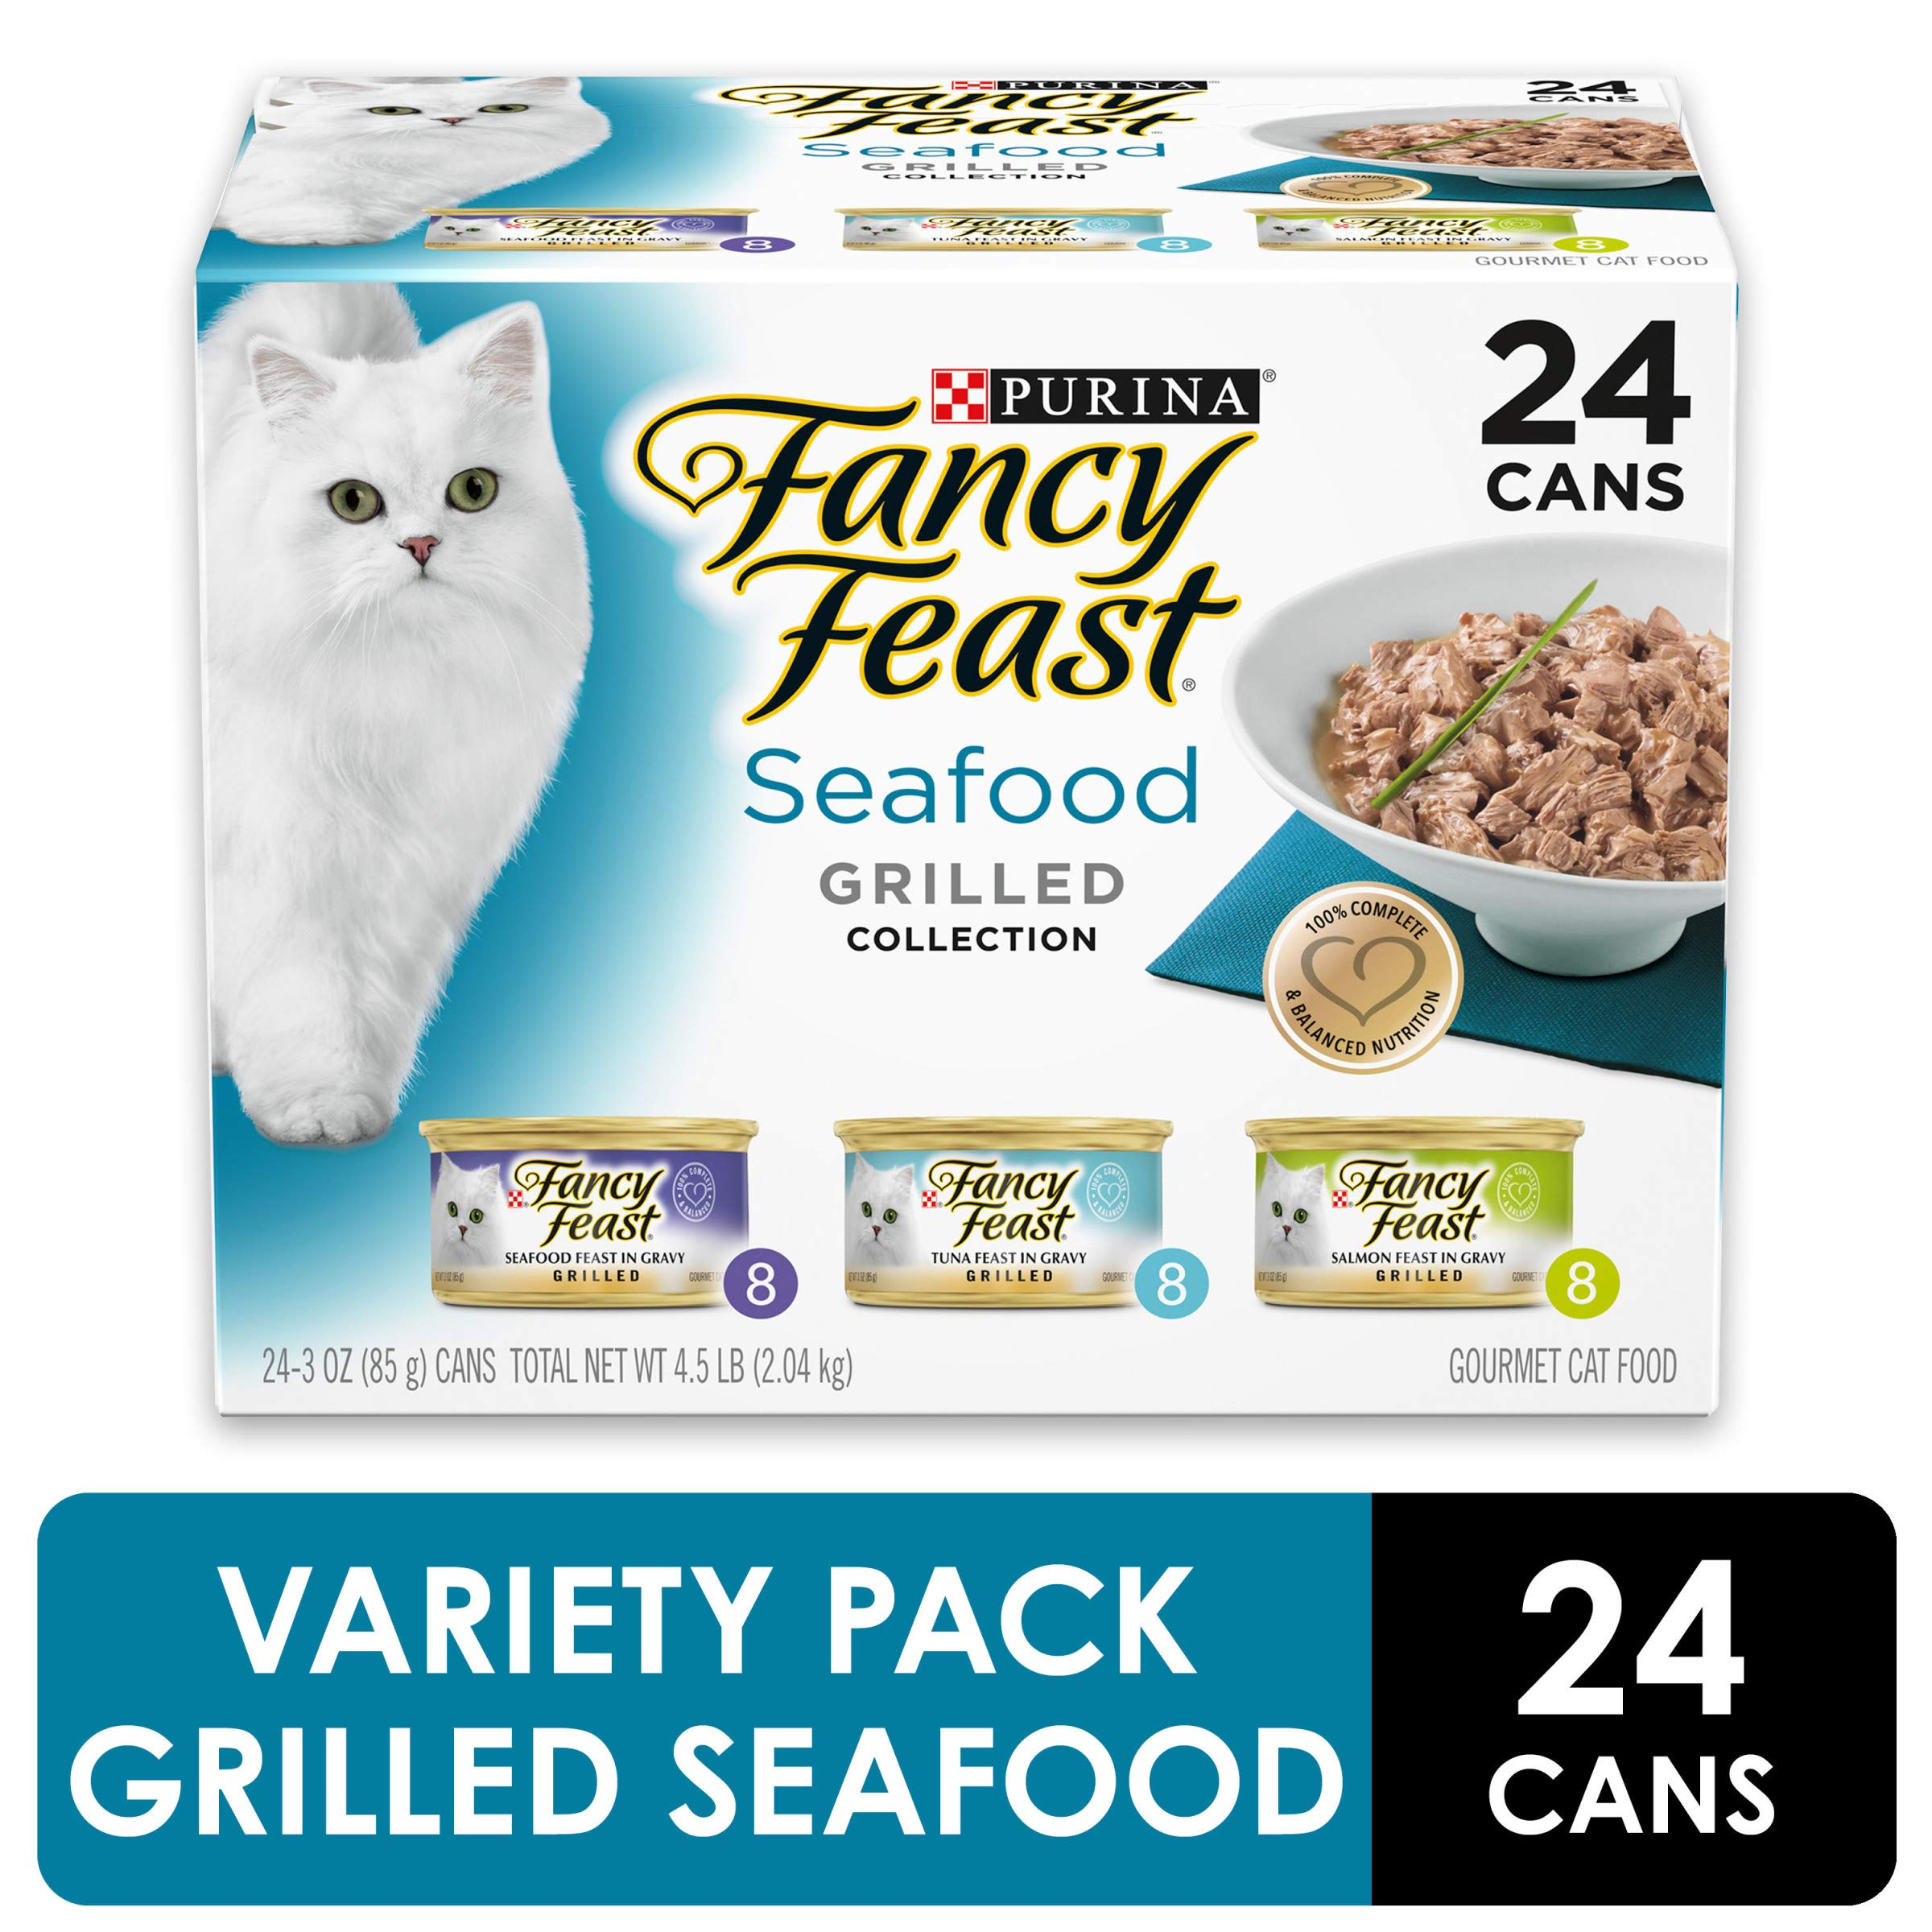 Purina Fancy Feast Gravy Wet Cat Food Variety Pack, Seafood Grilled Collection - (24) 3 oz. Cans by Purina Fancy Feast